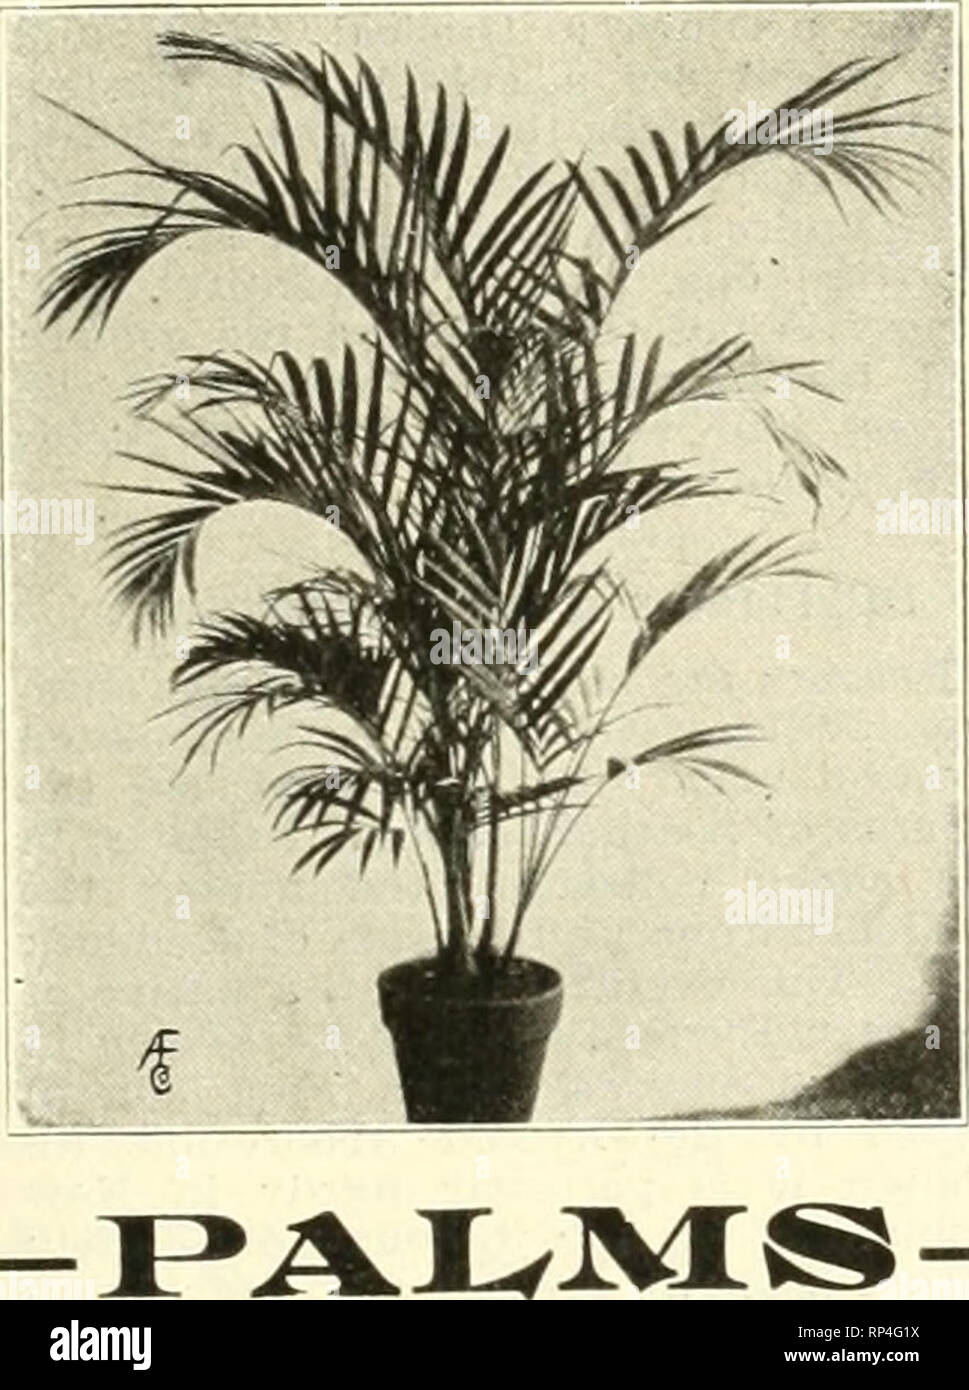 ". The American florist : a weekly journal for the trade. Floriculture; Florists. WITTBOLD'S Plants ARE BEST ^ ""^^H W fH  11 r . Pteris Serrulata. Order Today and Avoid the Risk of Cold Weather Shipments Bedding Plants p. de Balle; 2'ln., f2.60 per PrincHi Aohryanthes 100. Agttratum, Stella Gurney and Piulloe, 2-ln., 12.00 per 100. COLEUS, 2-mch. Per 100 paster, red and yellow $2.00 Beckwltta'B Gem 2.00 Golden Bedder 2.00 VerschaffeltU 2.00 Geraniums, S. A. Nntt, Rose, 2-ln., (2.00 per 100. Gnapbalium Lanatum. 2 In., $2.00 per 100, Heliotrope, 2'in., $2.00 per 100. Ivy, German, 2-in., $2. - Stock Image"